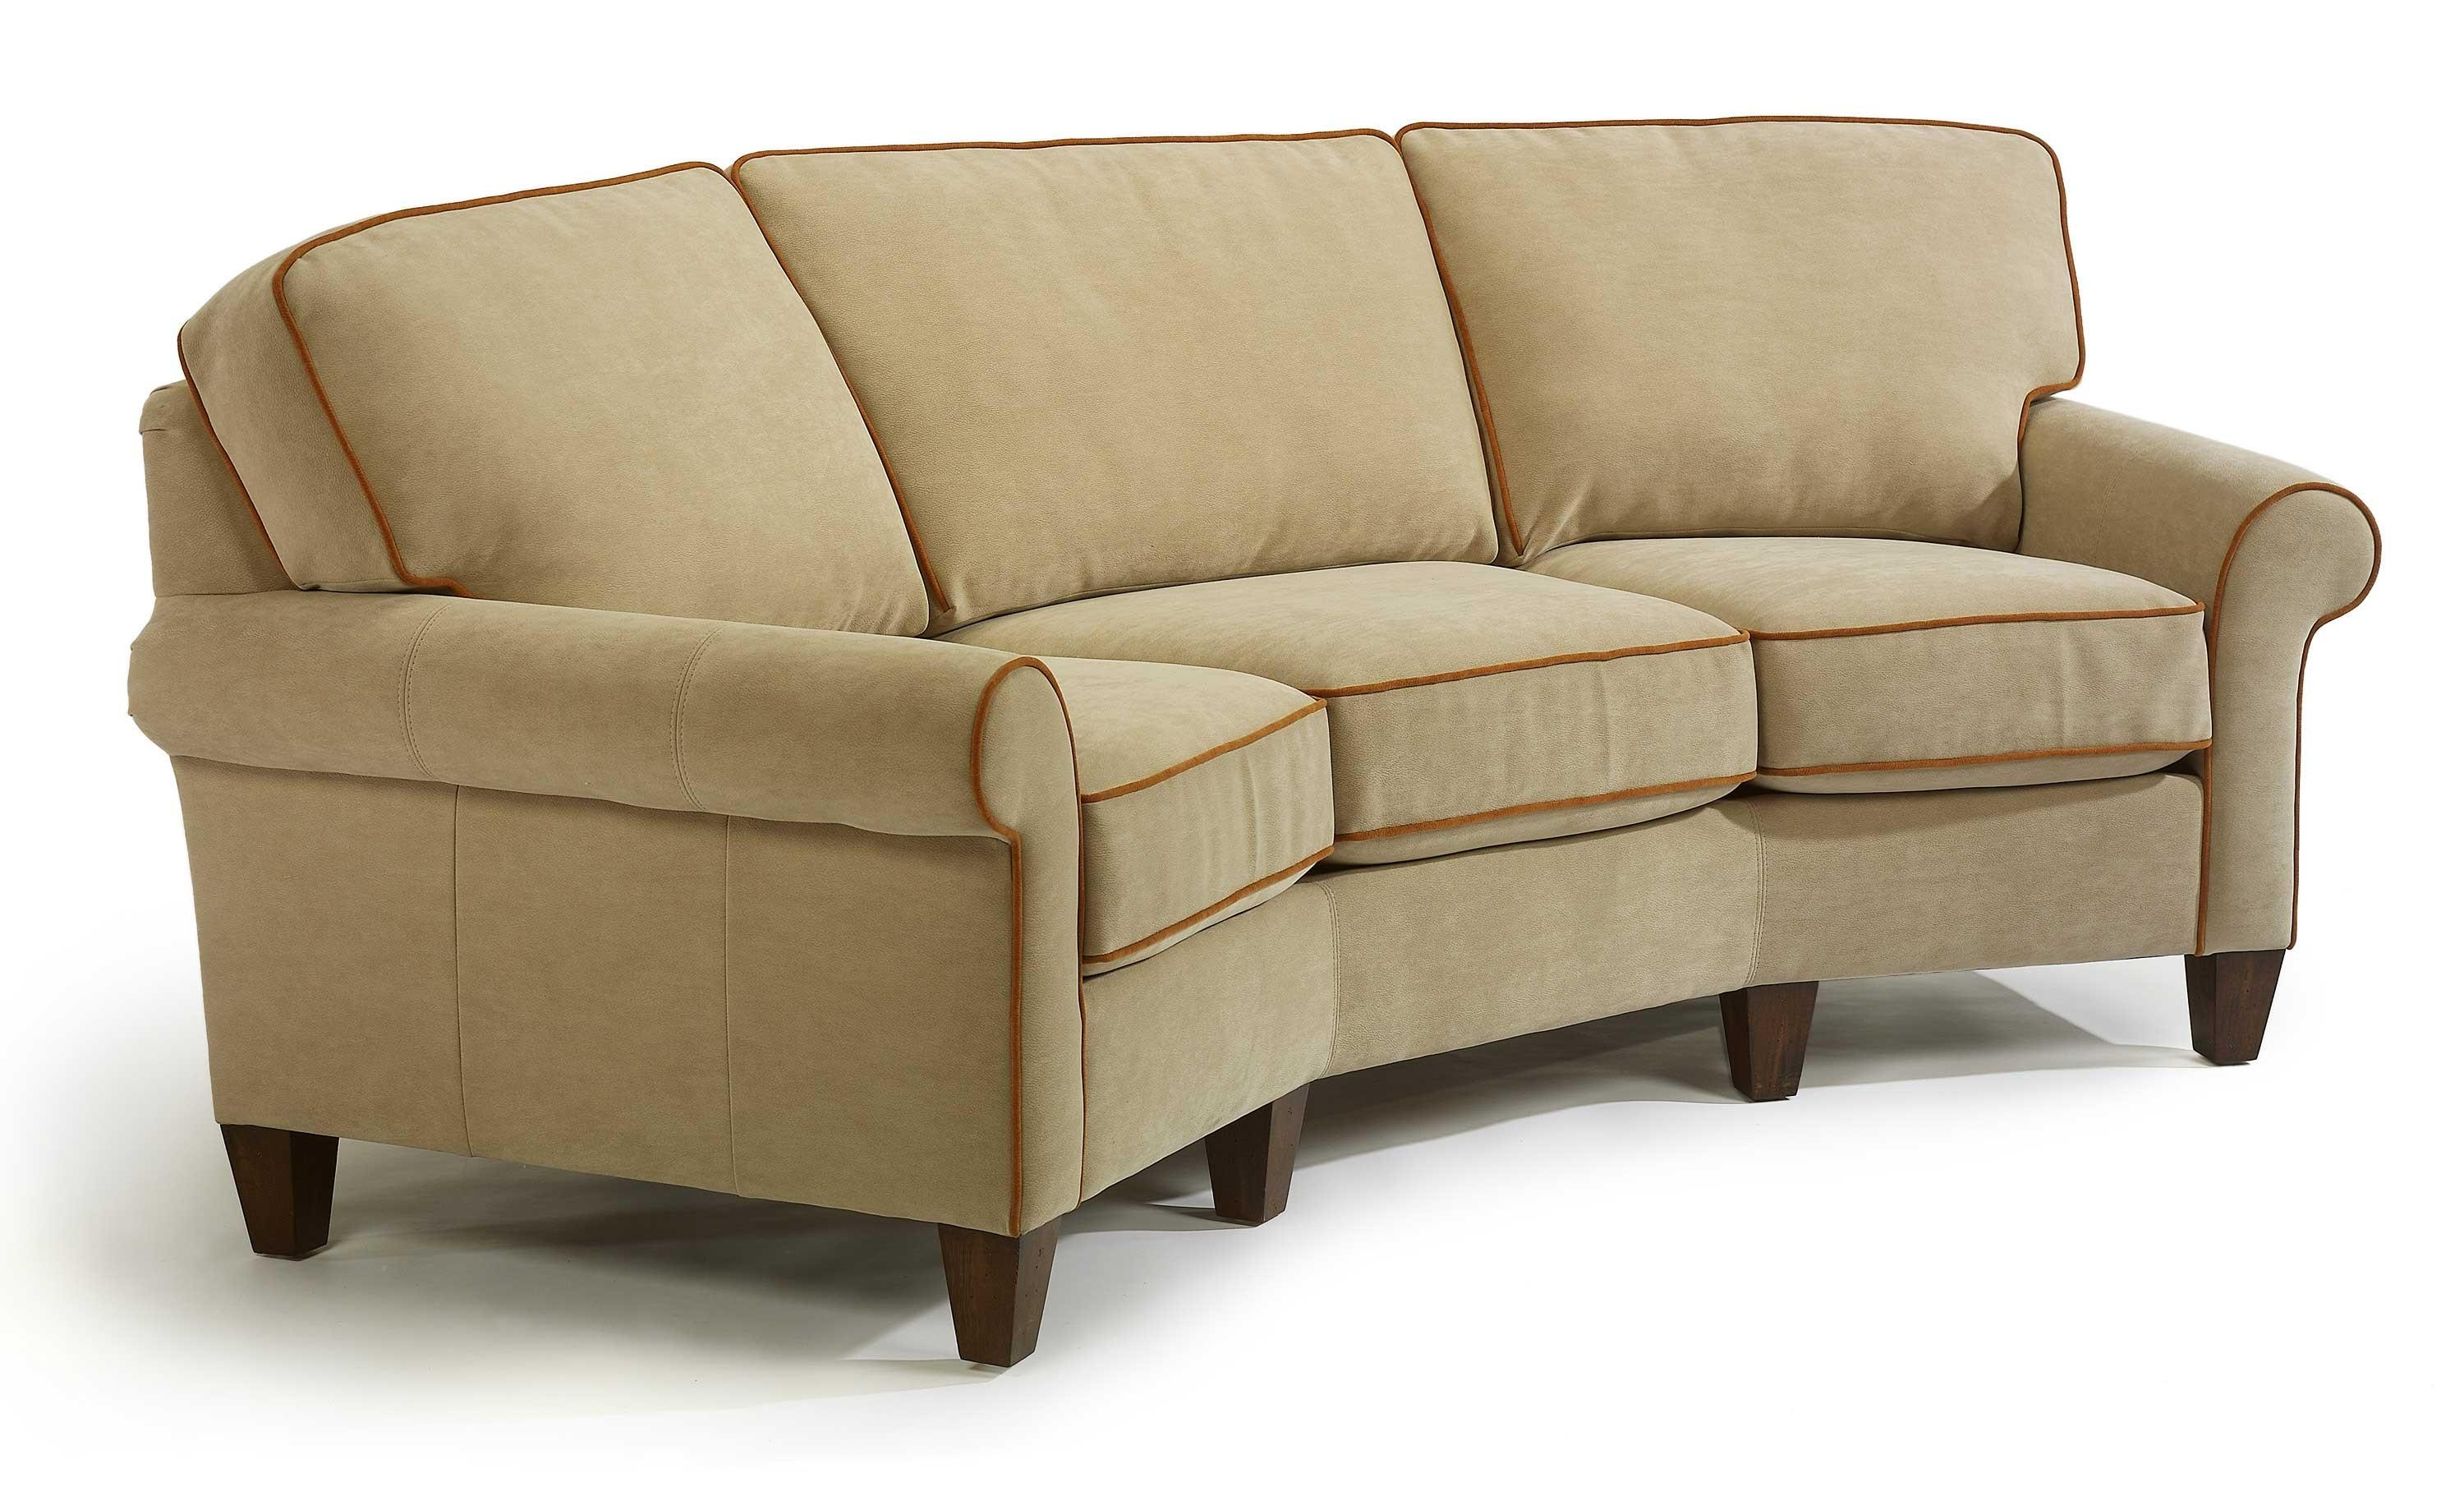 Jasen's Furniture Your Flexsteel Dealers In Michigan Throughout Sofa Chairs (View 10 of 20)